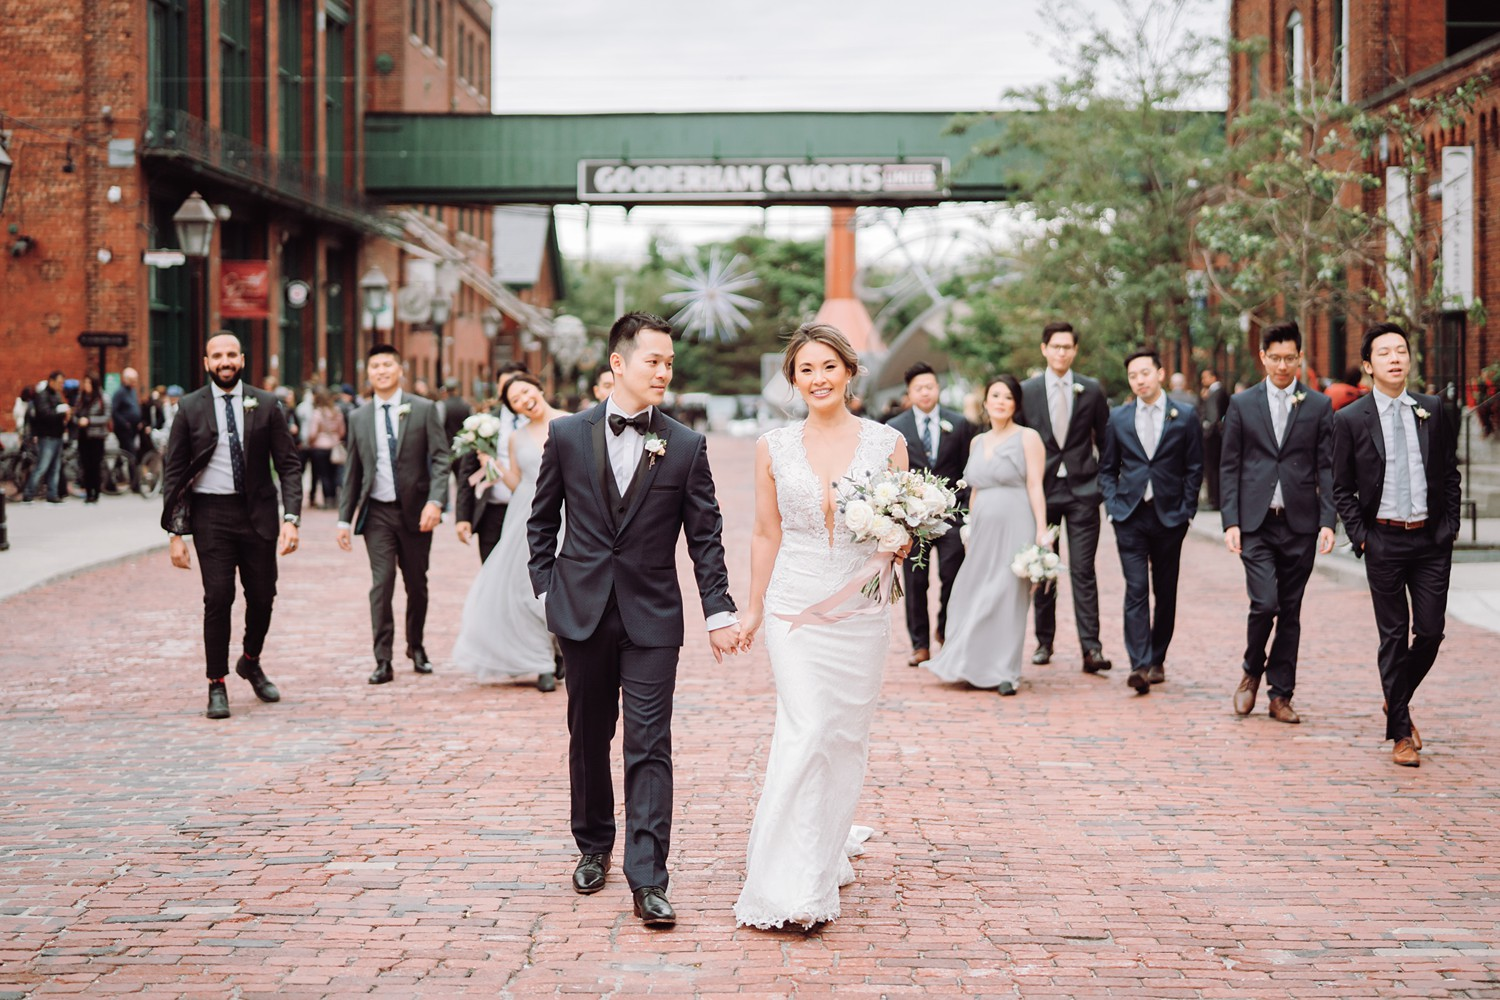 Wedding_Party_Archeo_Distillery_District_Wedding_Photos_Toronto_Destination_Wedding_Photographer-Rhythm_Photography